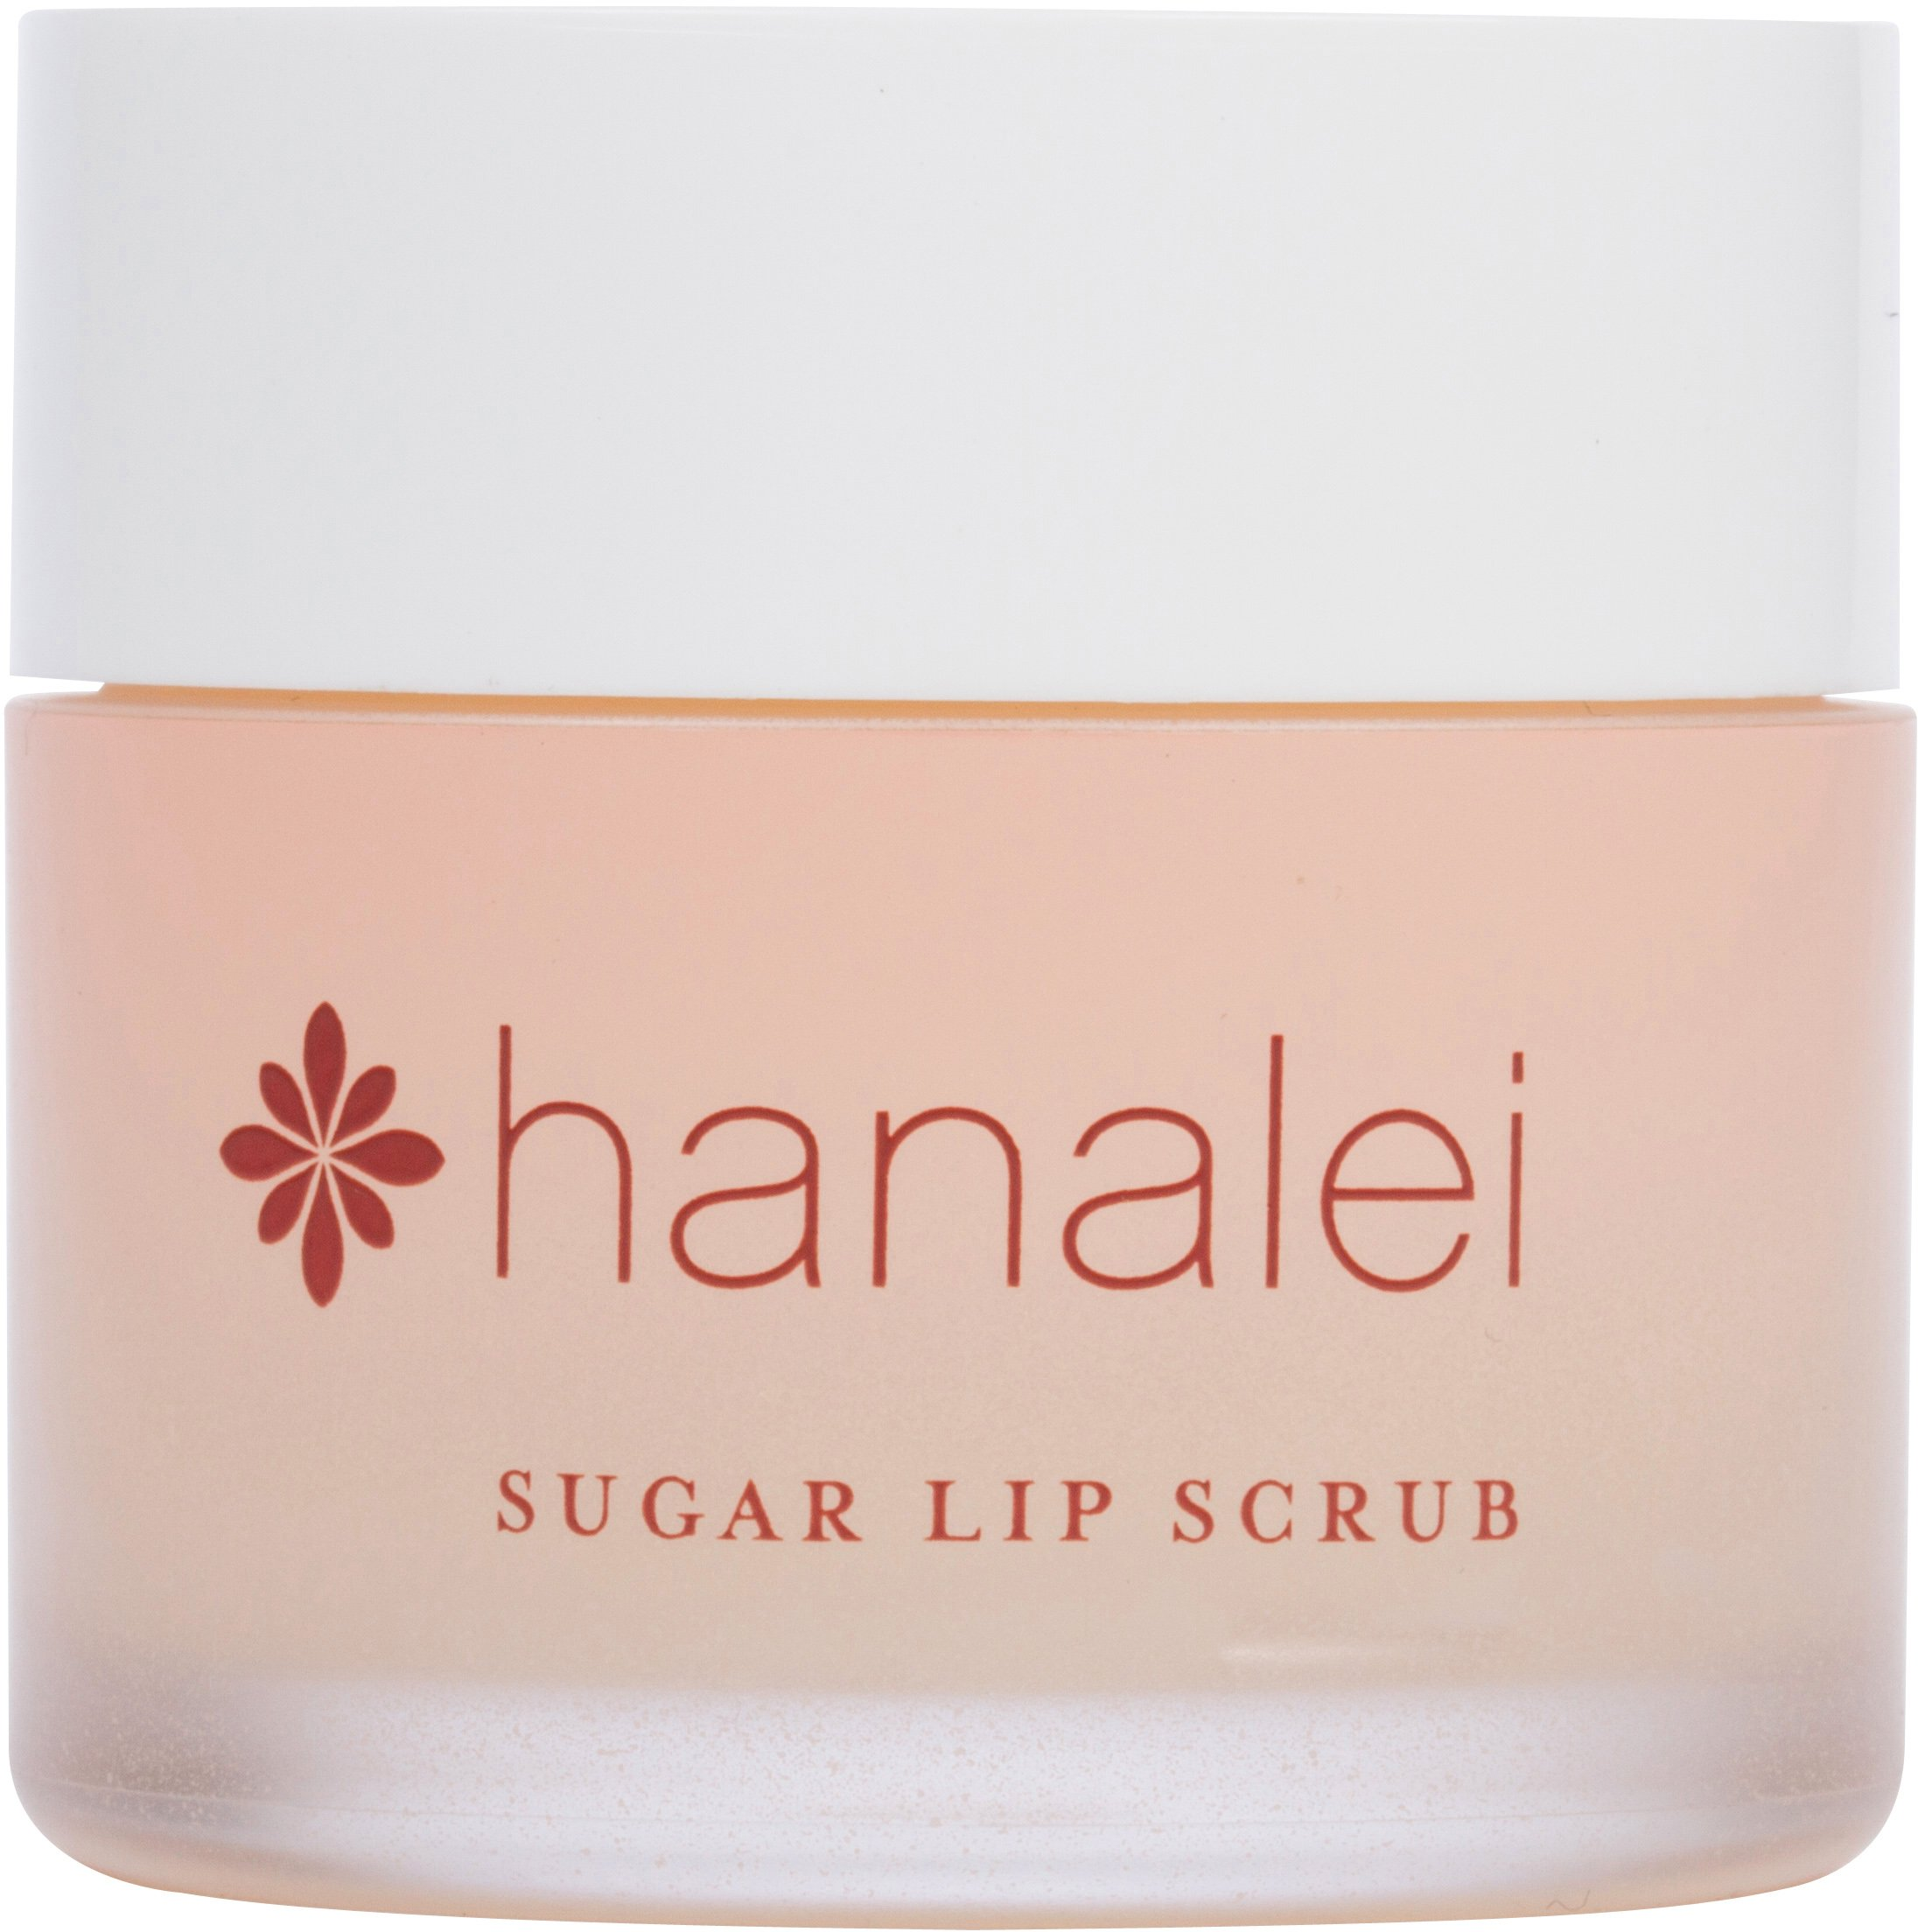 Sugar Lip Scrub by Hanalei Company, Made with Raw Cane Sugar and Real Hawaiian Kukui Nut Oil, 22g (Cruelty free, Paraben free) MADE IN USA